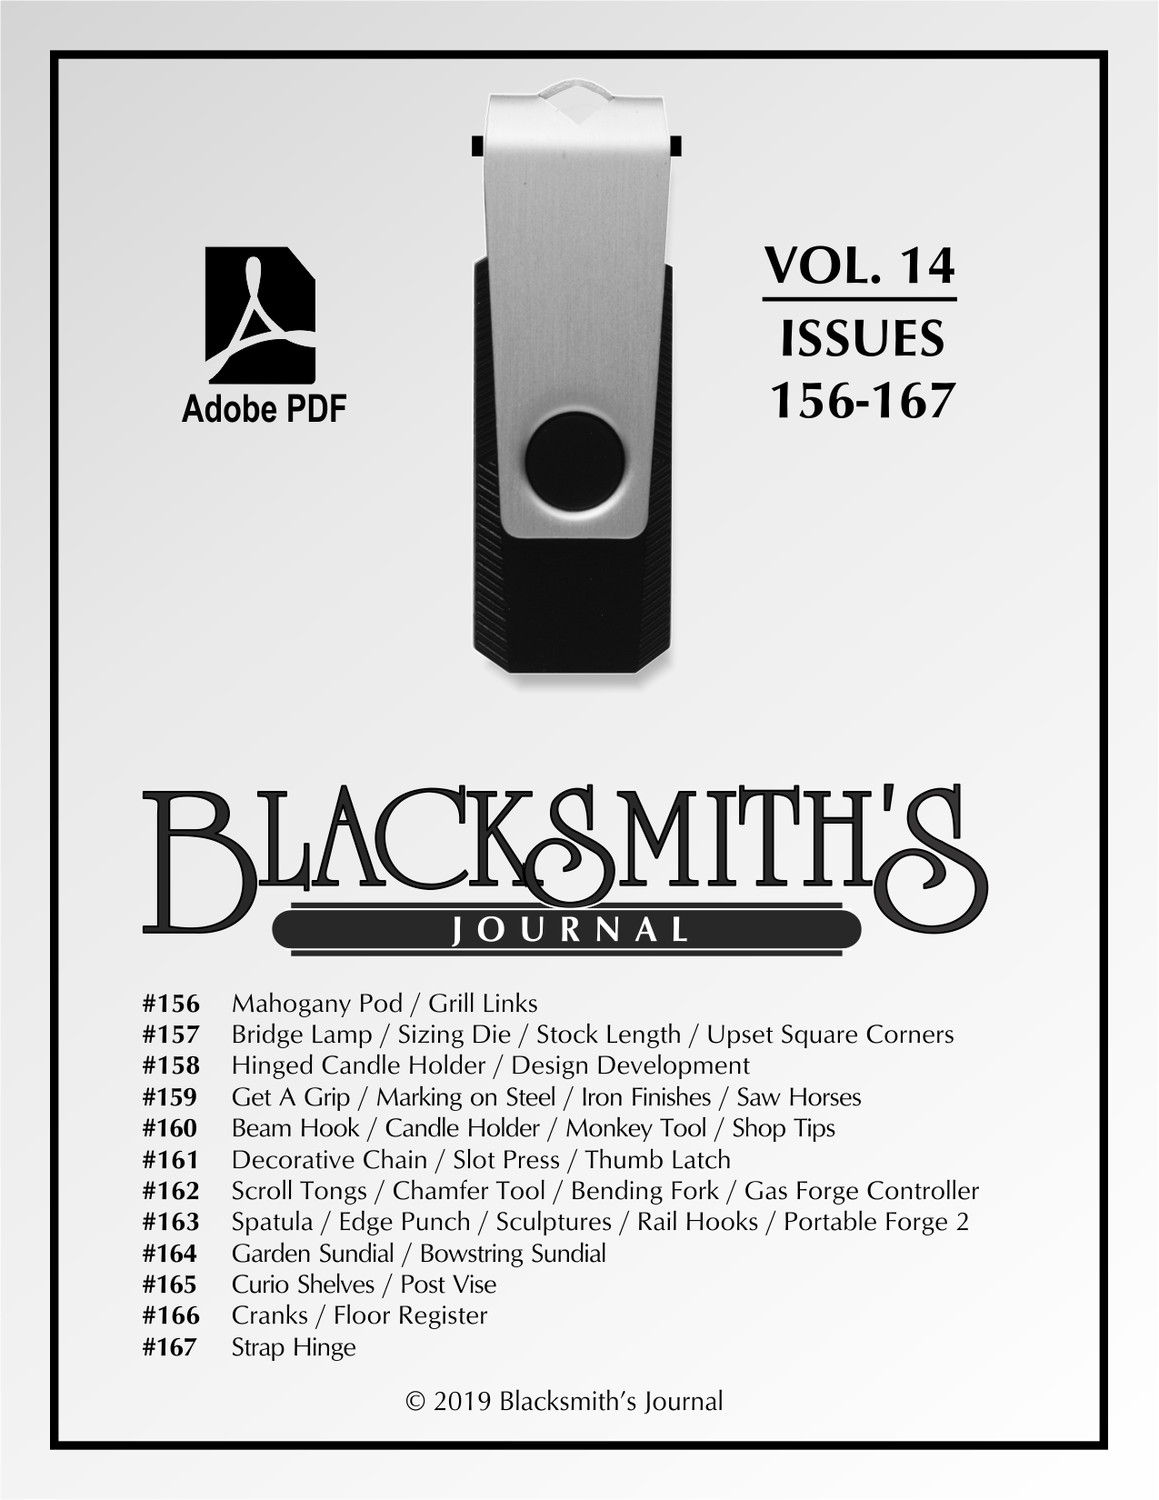 USB Flash Drive - Blacksmith's Journal Vol. 14